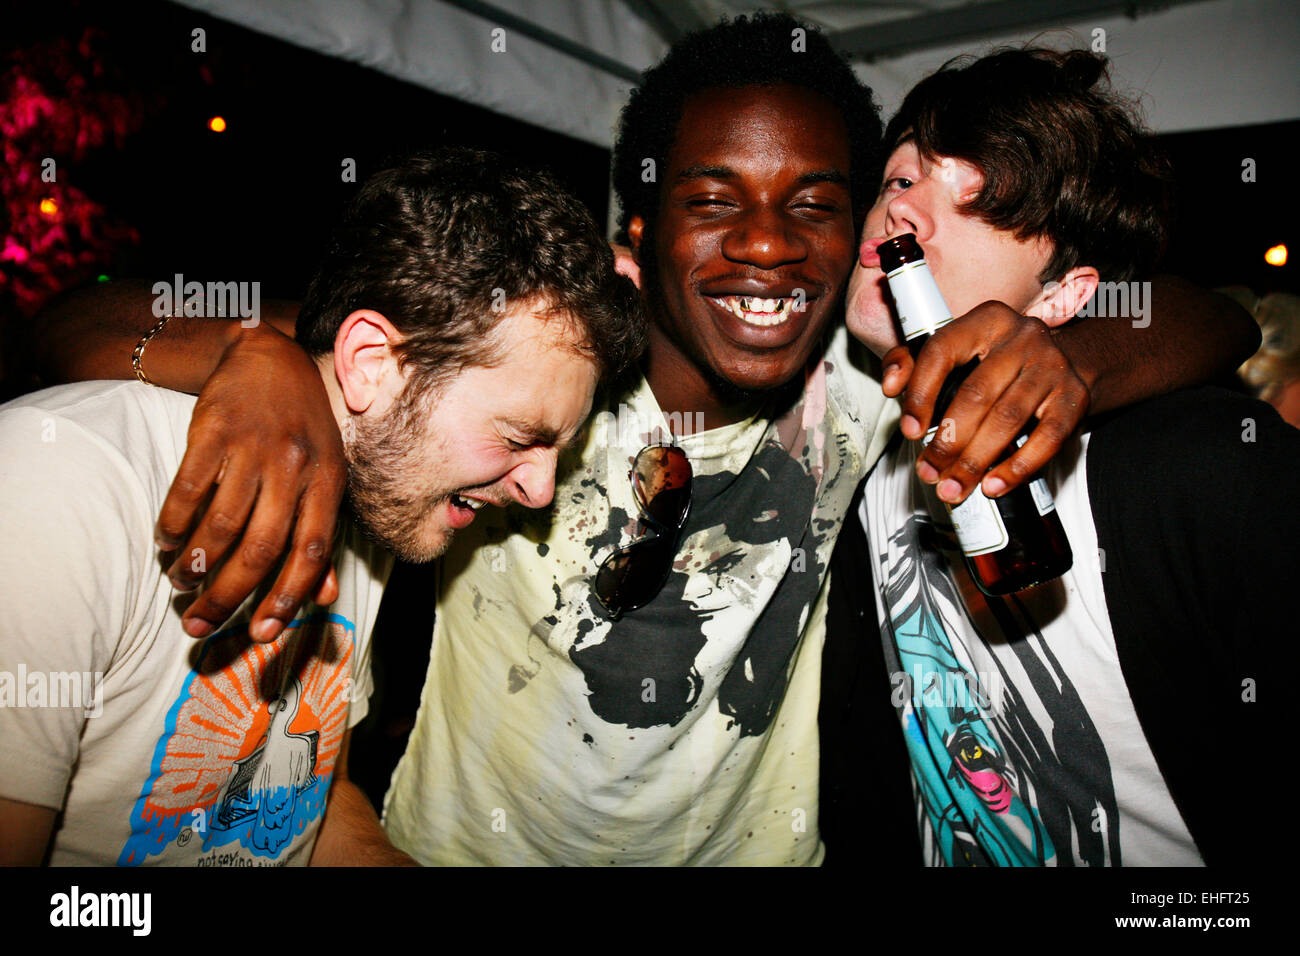 Mates having fun at TDK Cross Central Festival 2007 at Canvas in Kings Cross in London. - Stock Image